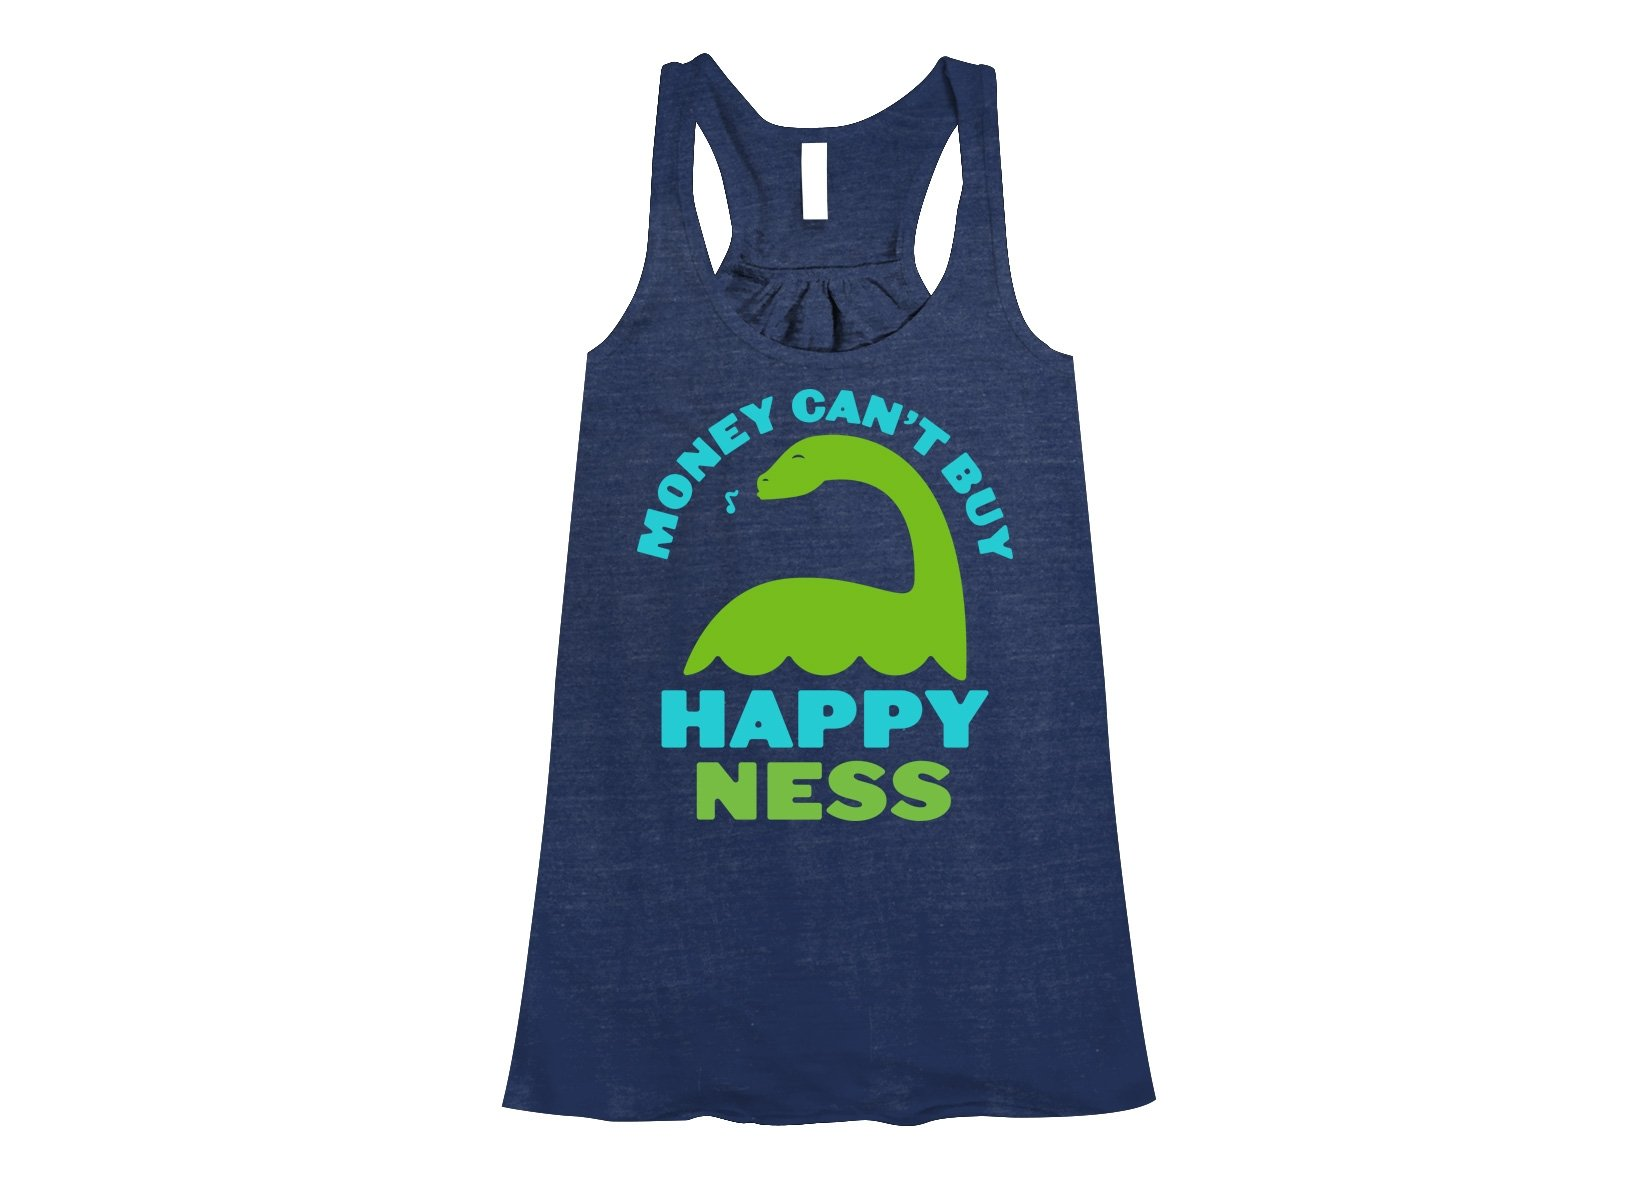 Money Can't Buy Happy Ness on Womens Tanks T-Shirt